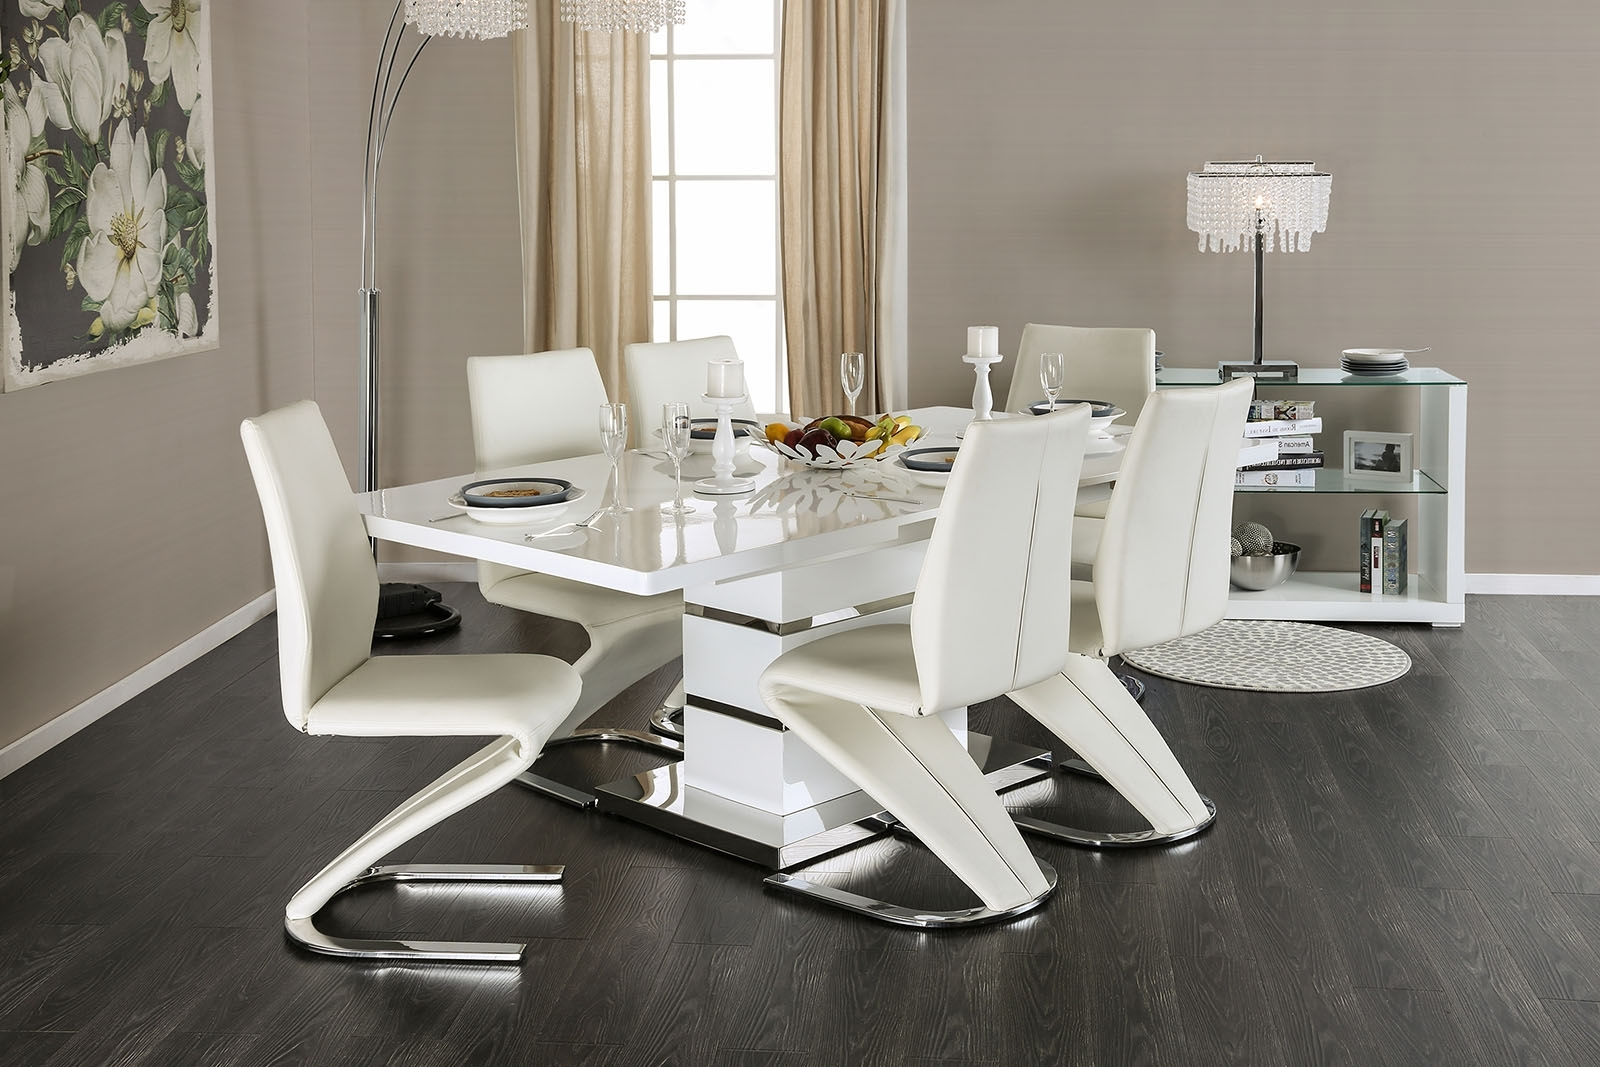 Widely Used Midvale Contemporary Style White High Gloss Lacquer Finish & Chrome In High Gloss White Dining Chairs (View 24 of 25)